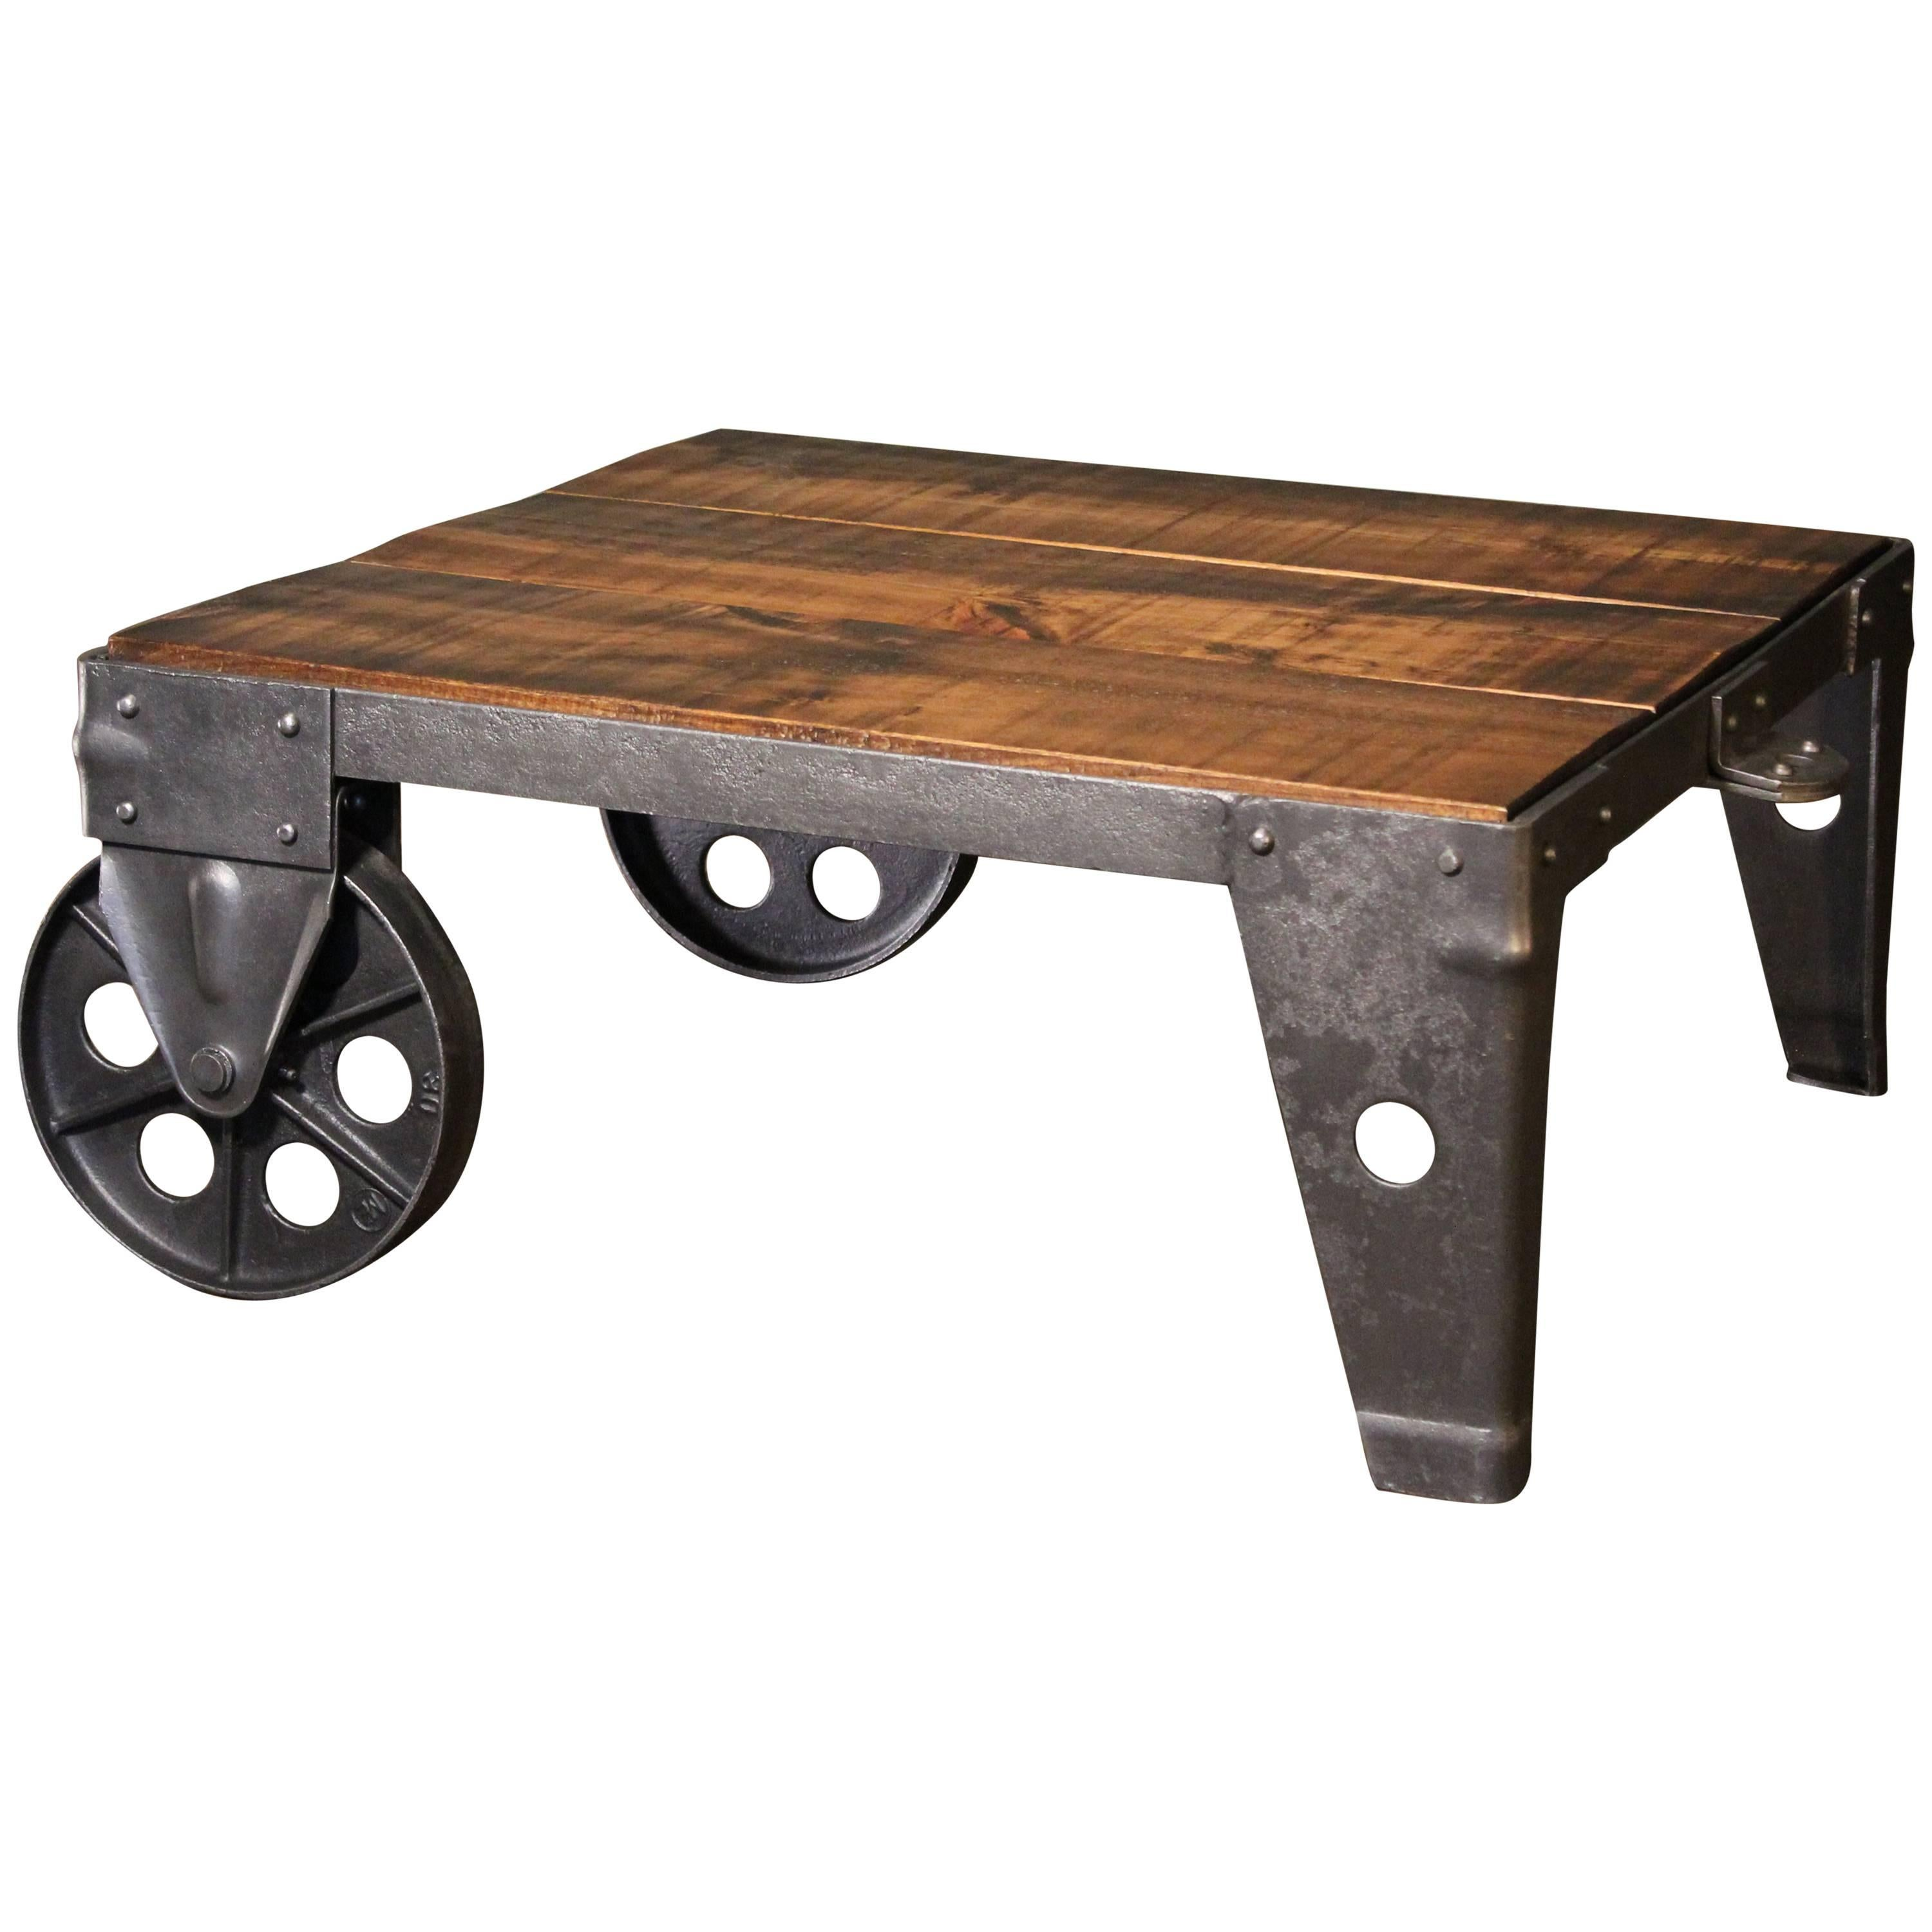 Superbe Authentic Vintage Industrial Cart Coffee Table Factory Shop Wood Steel And  Iron